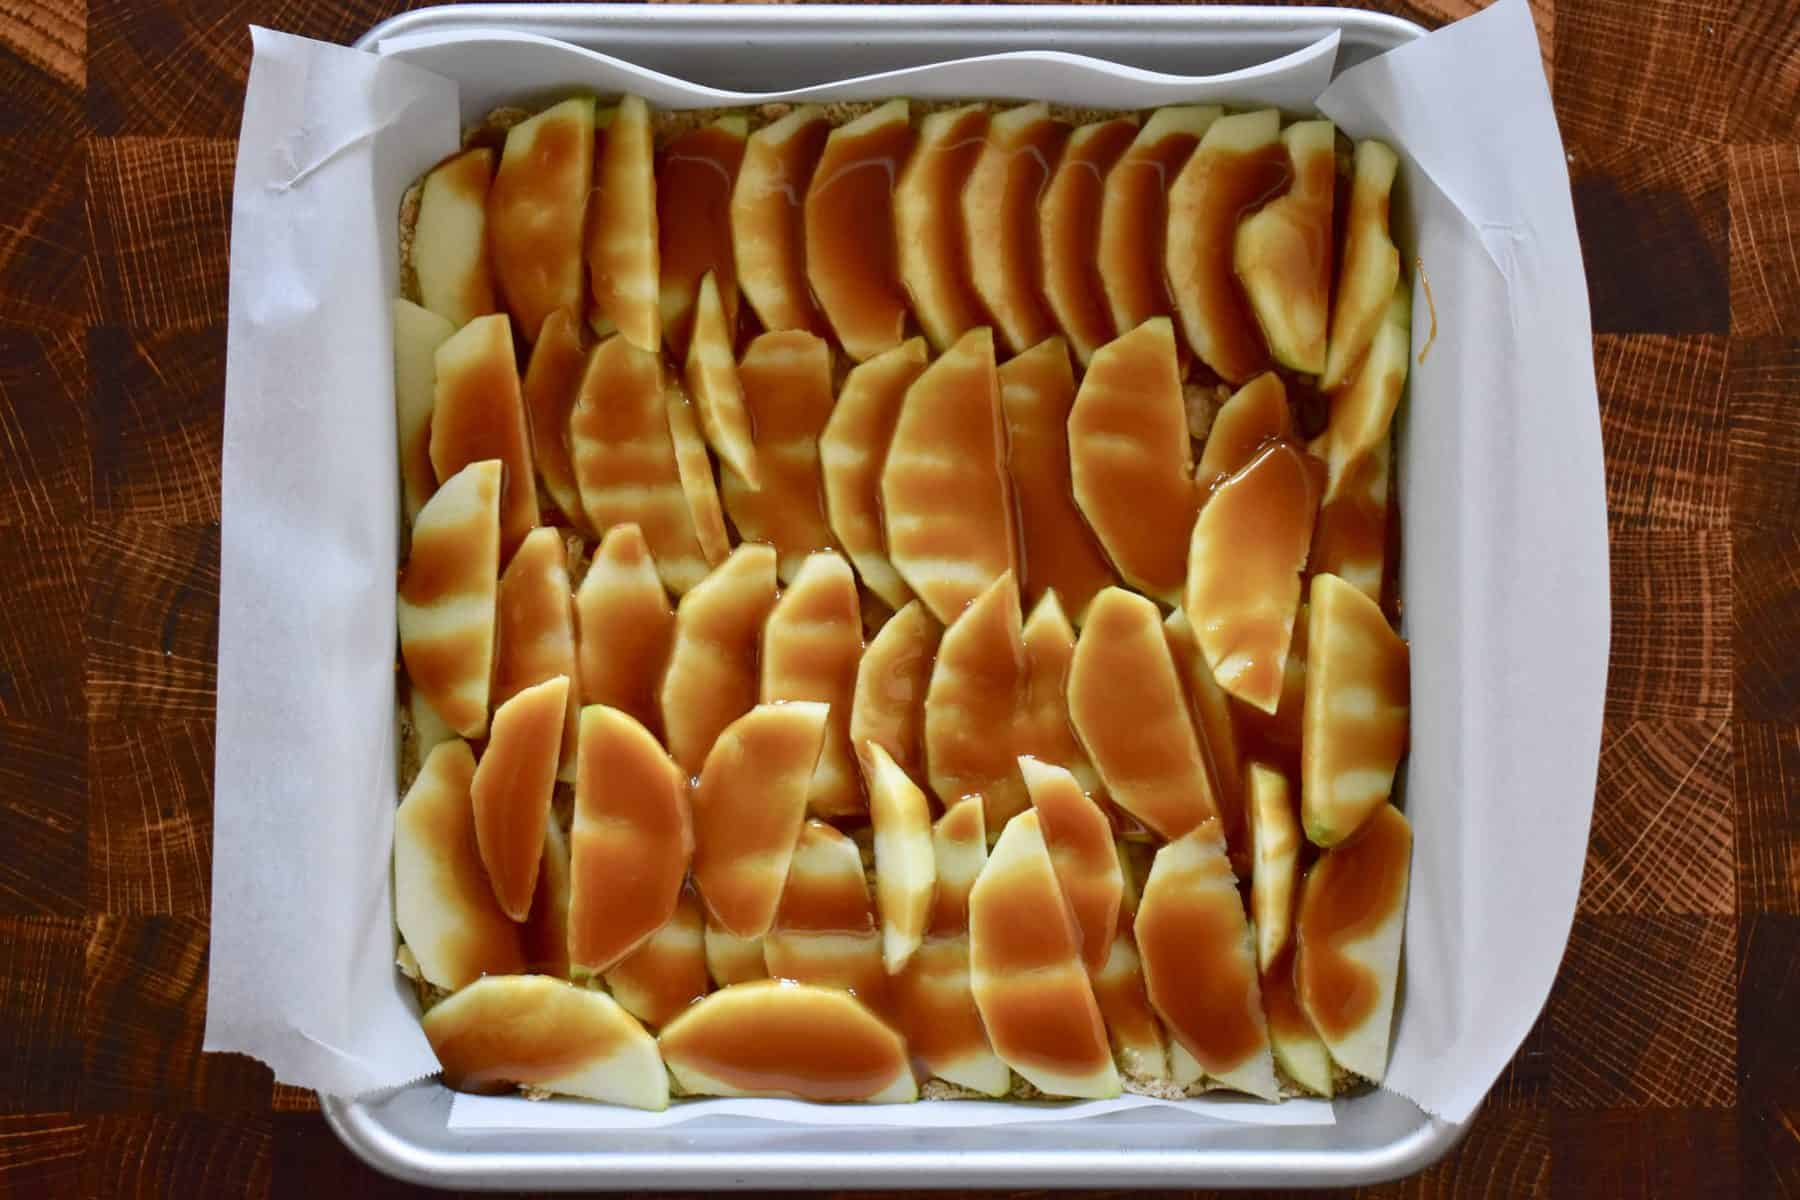 caramel sauce poured over the sliced apple layer.